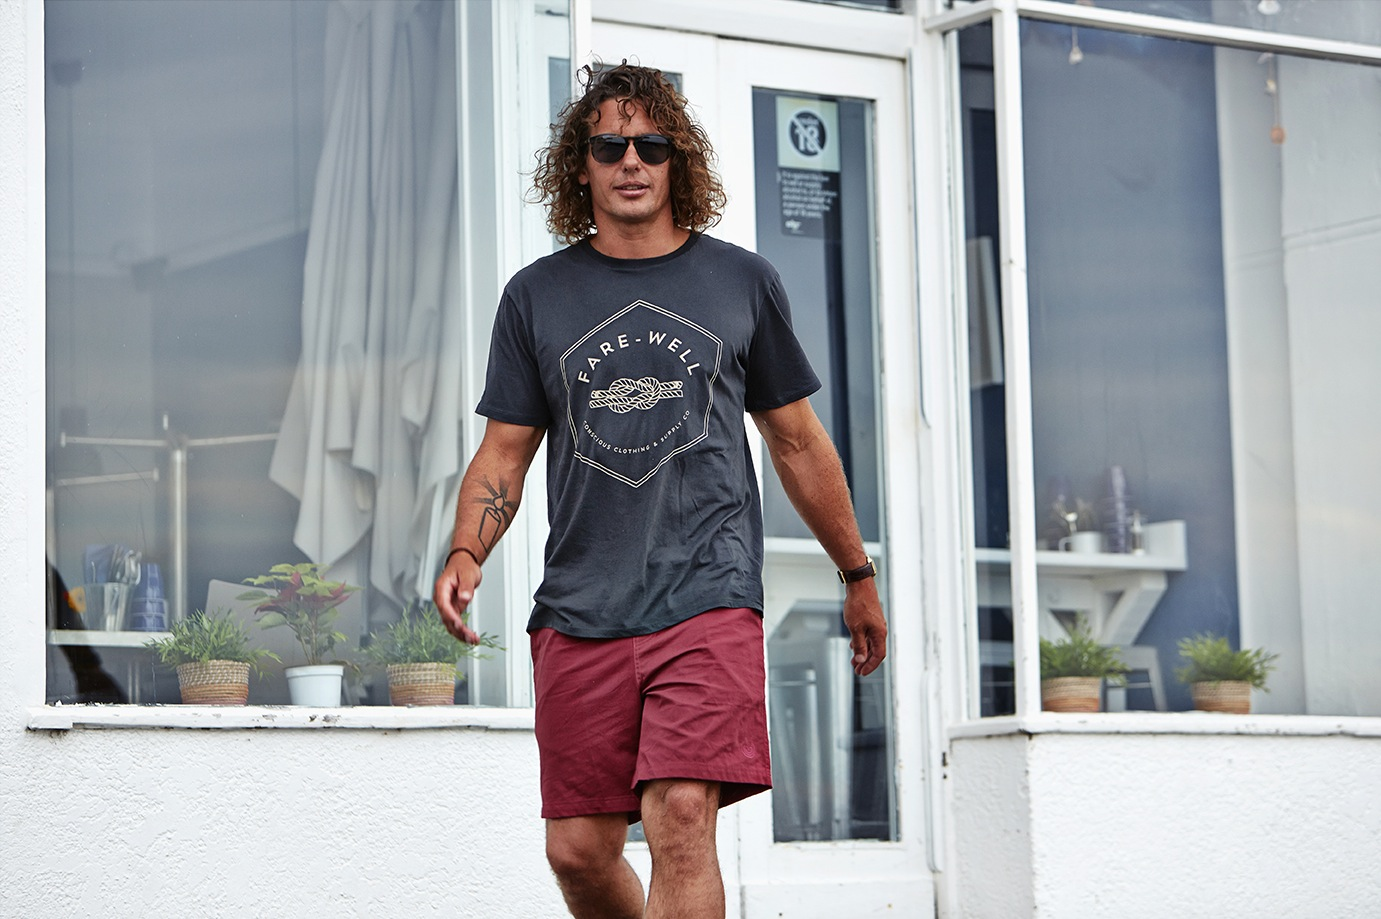 Hold Fast Tee by  Fare Well Co   Plain Plum Boardshorts by   Smile Clothing   Wynne Sunglasses by  Oscar Wylee